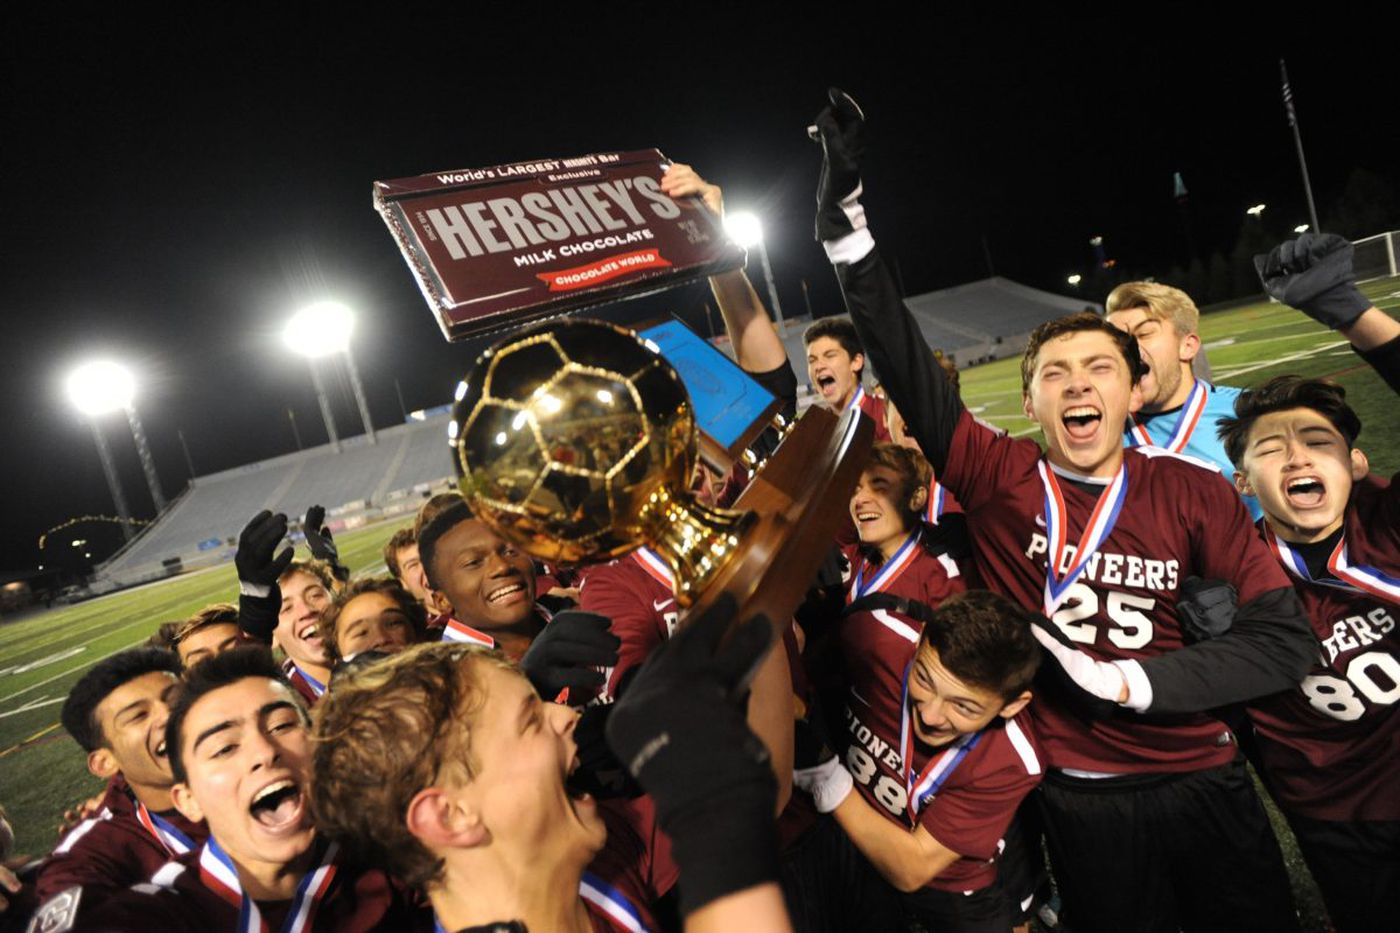 Friday's PIAA state finals roundup: Conestoga repeats as boys soccer state champions